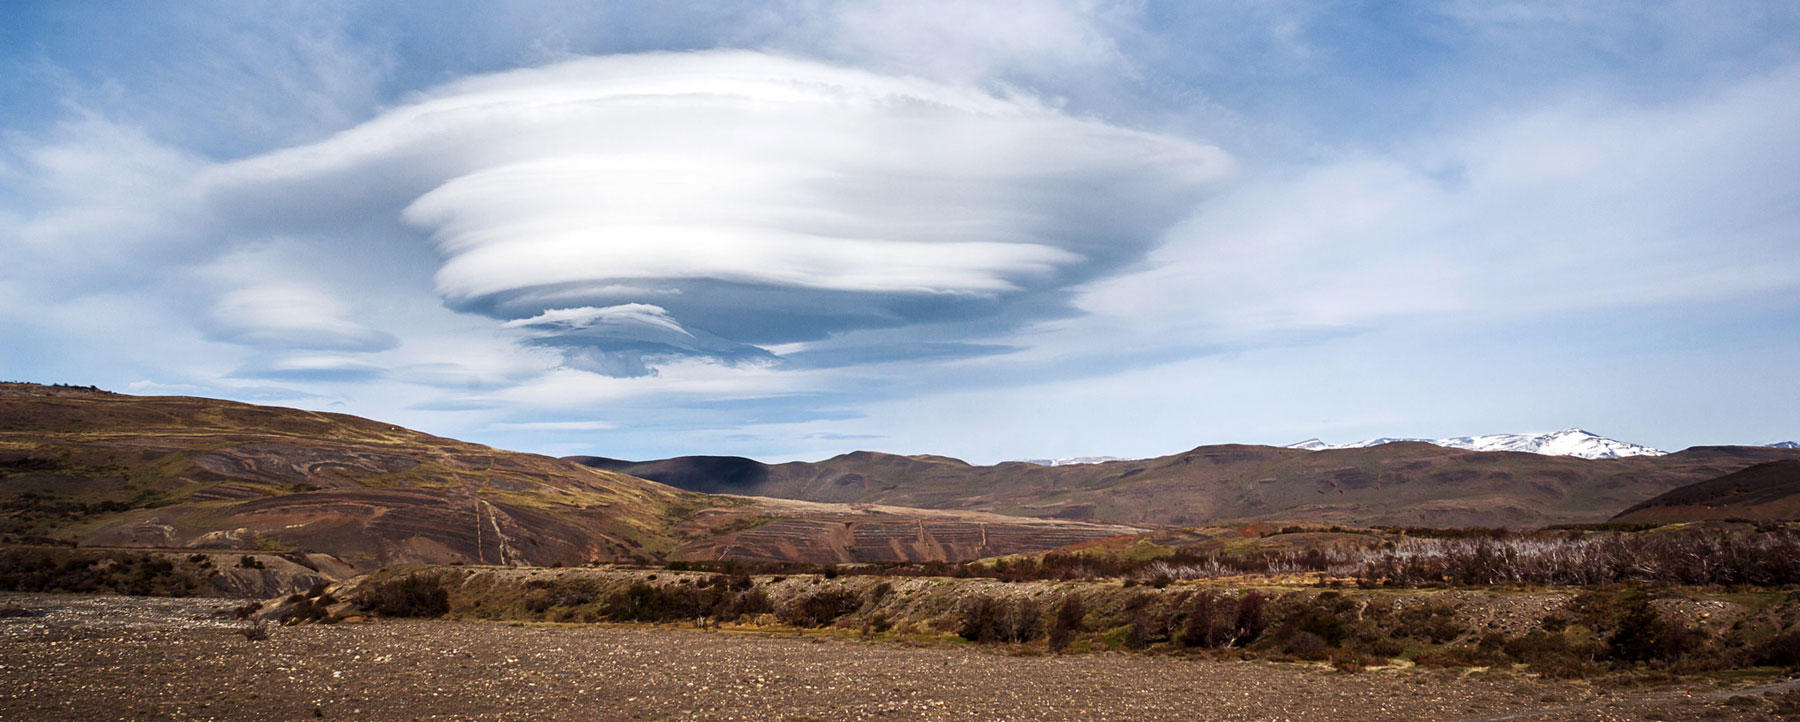 A lenticular cloud over Patagonia.